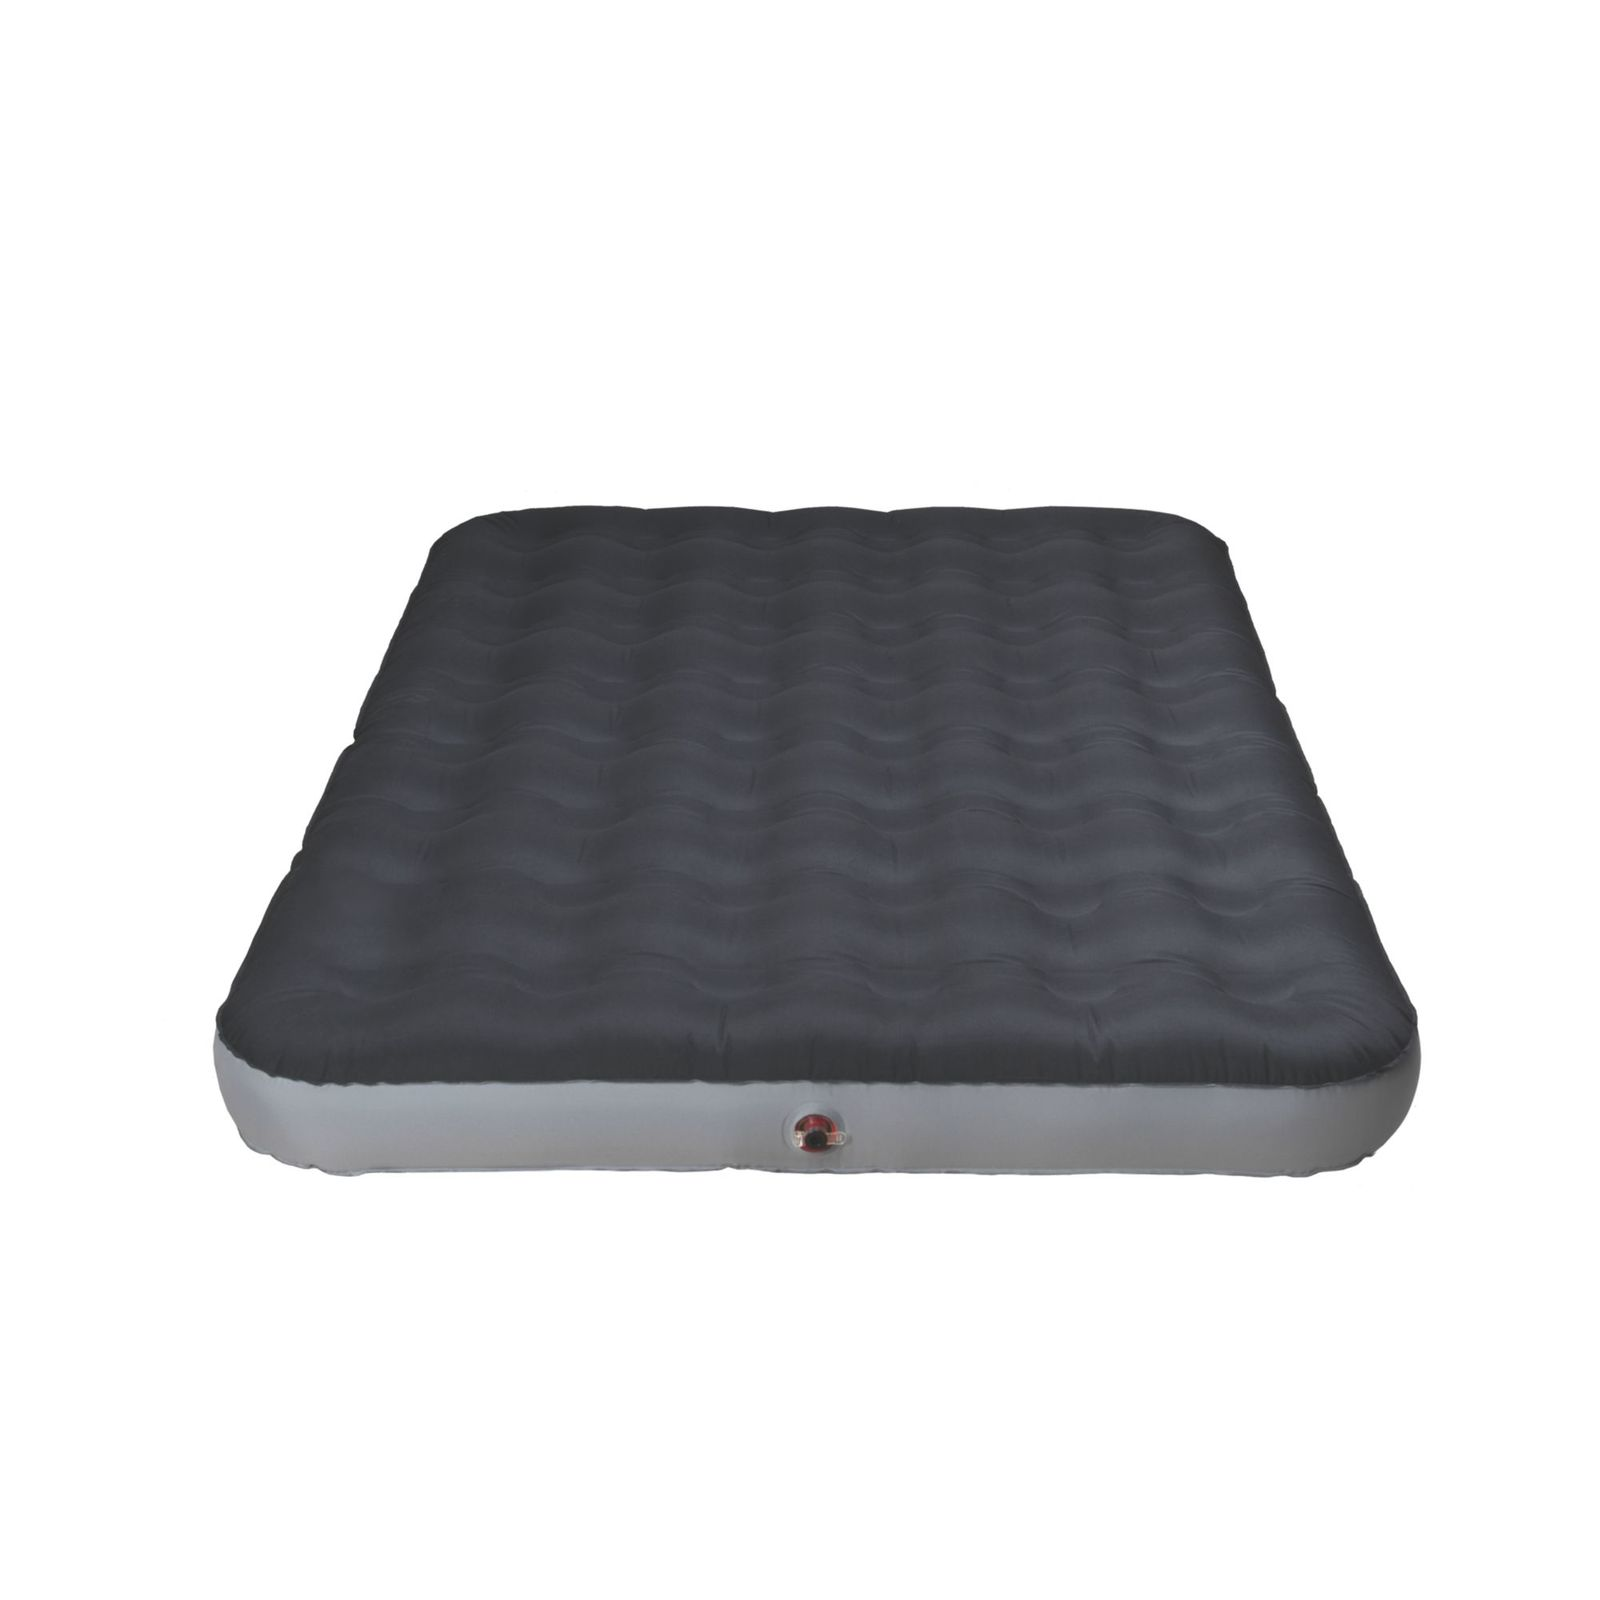 Single Mattress Brisbane Coleman All Terrain Queen Single High Airbed